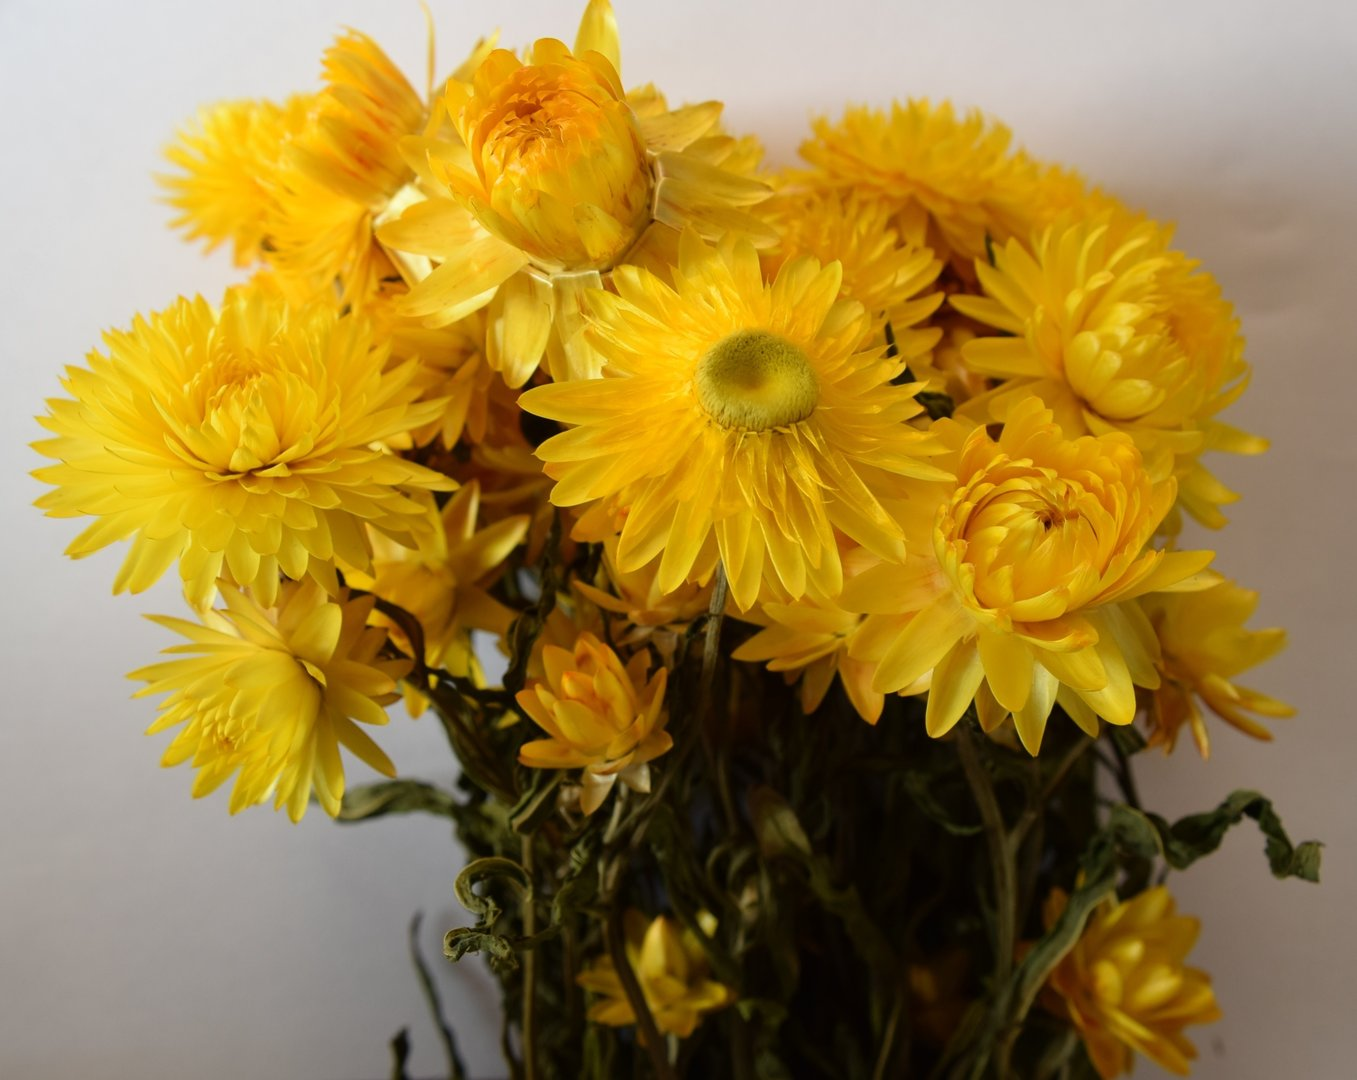 Helichrysum dried flower bunch yellow dried flowers shop helichrysum dried flower bunch yellow mightylinksfo